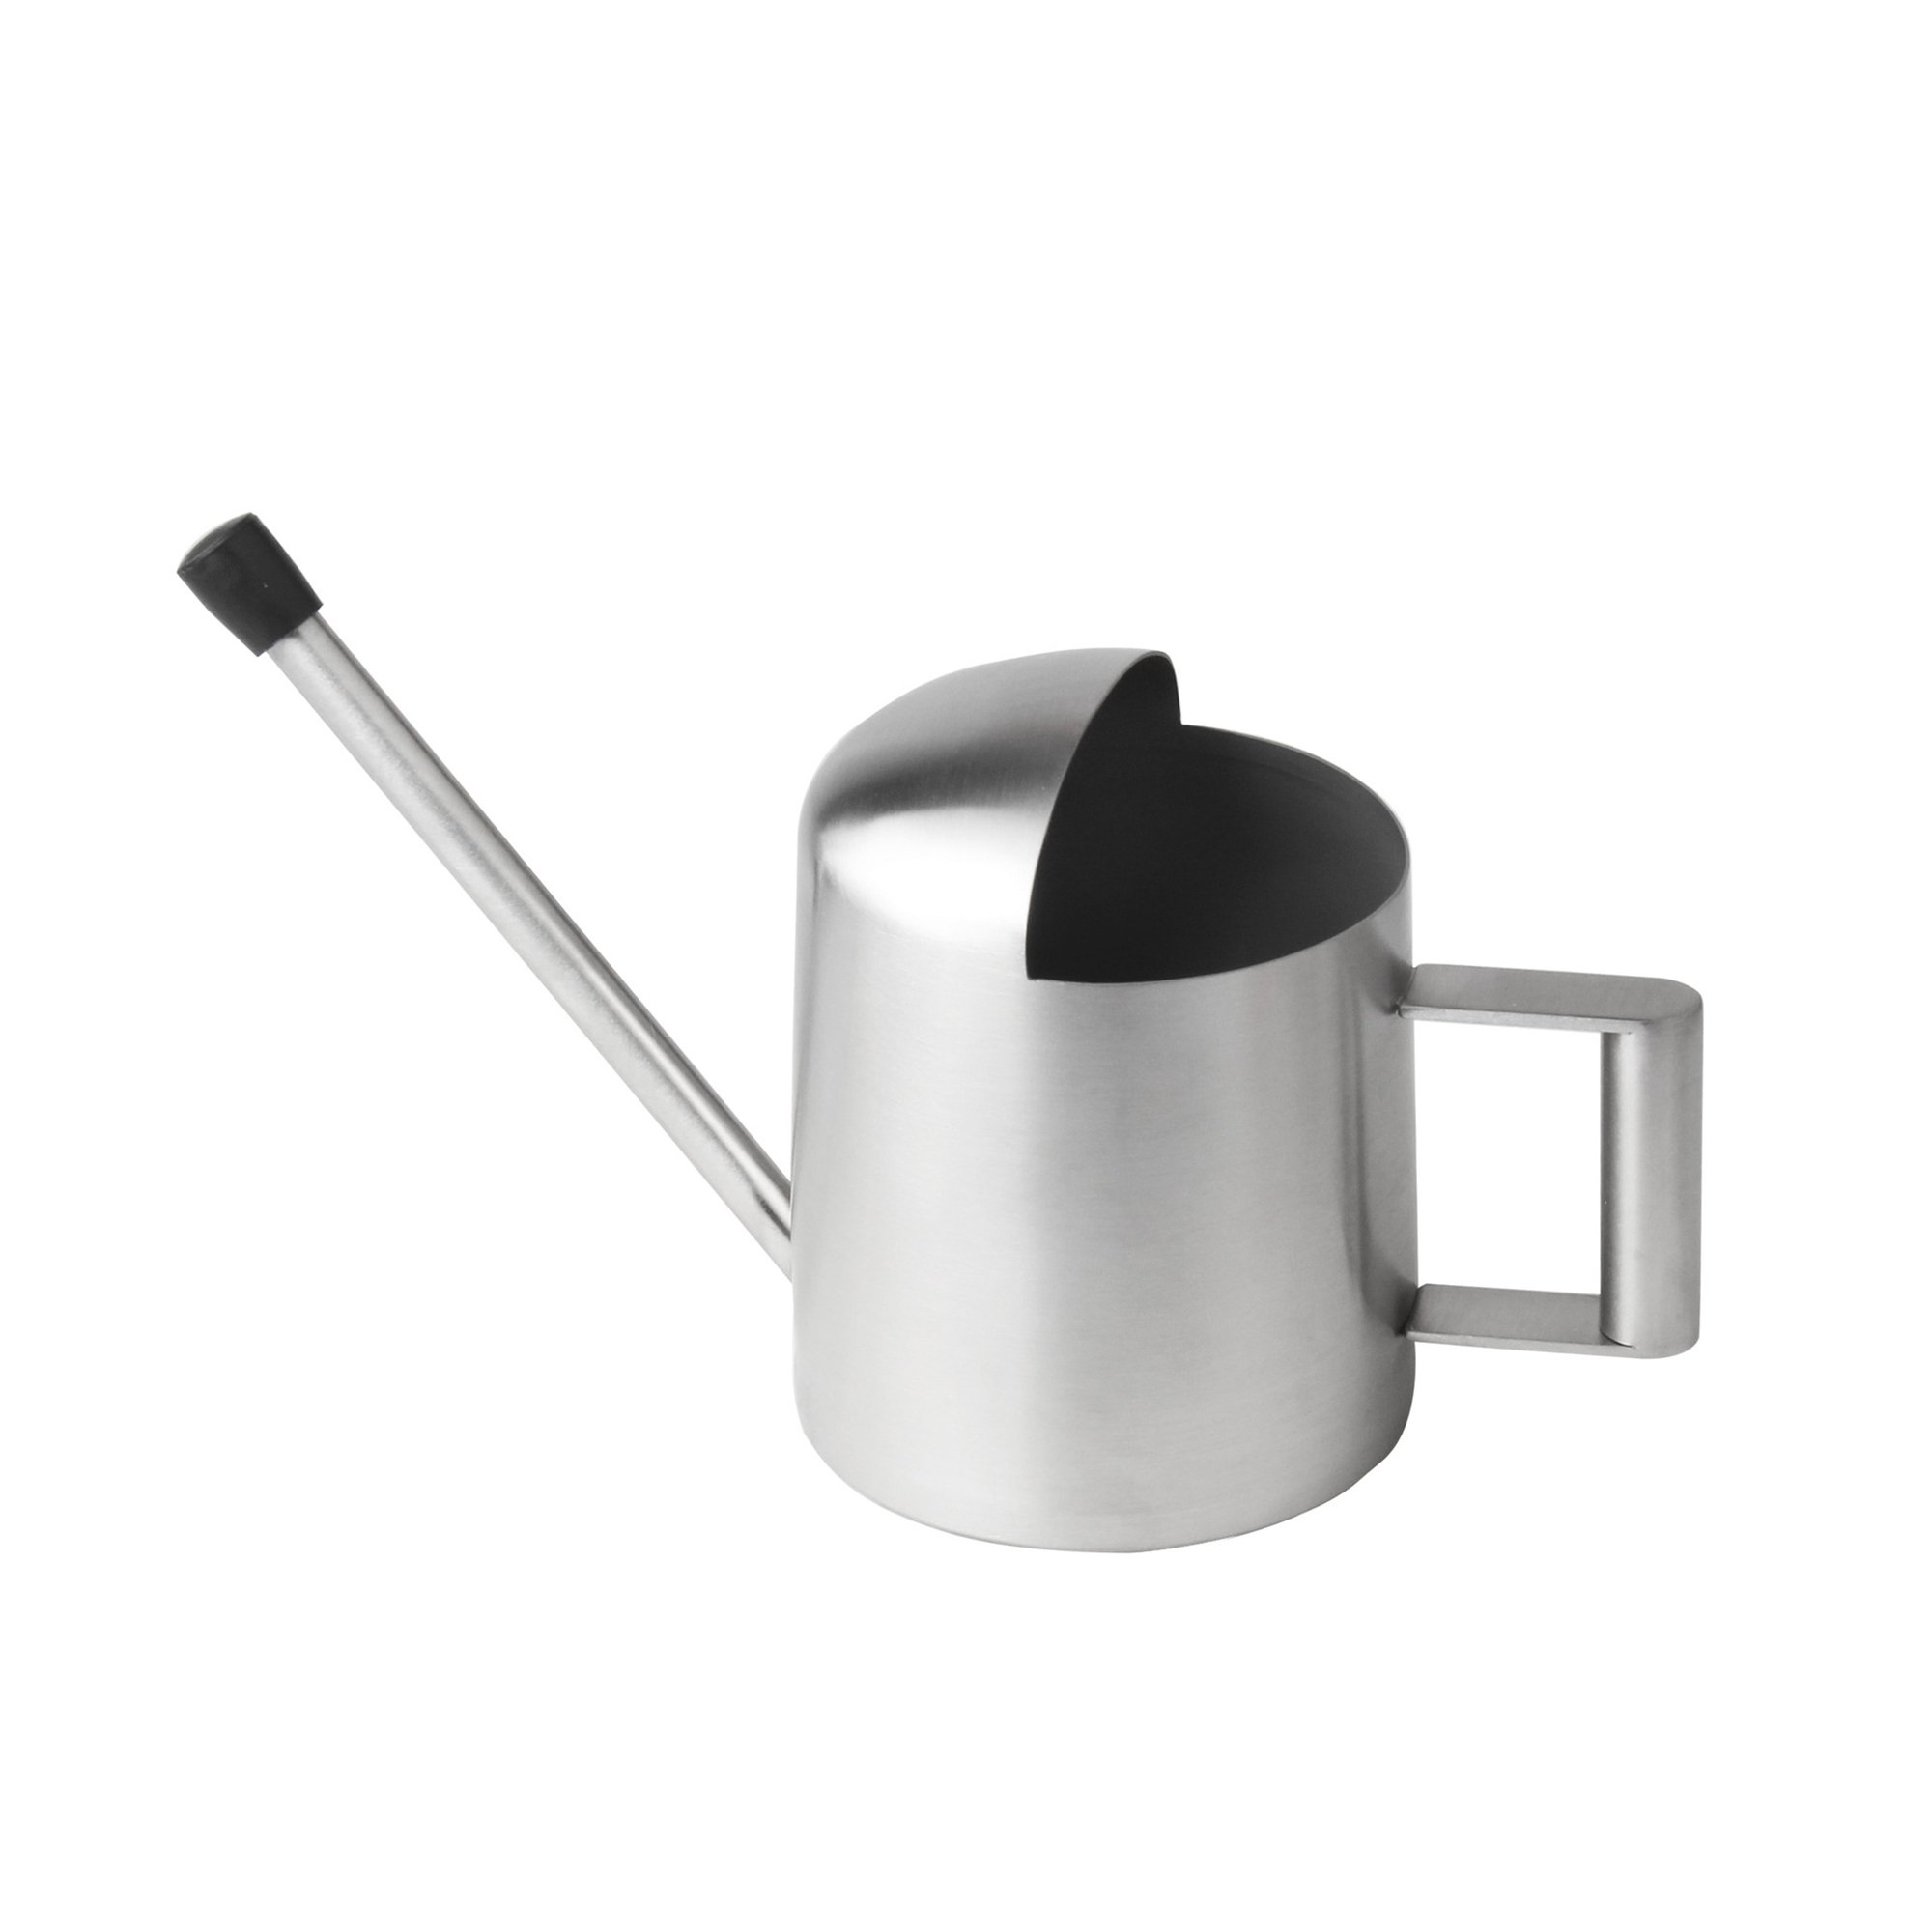 BeautiLife Long Spout Brushed Stainless Steel Watering Can Modern Style Watering Pot for Indoor Outdoor Garden Plants Houseplant(300ml)